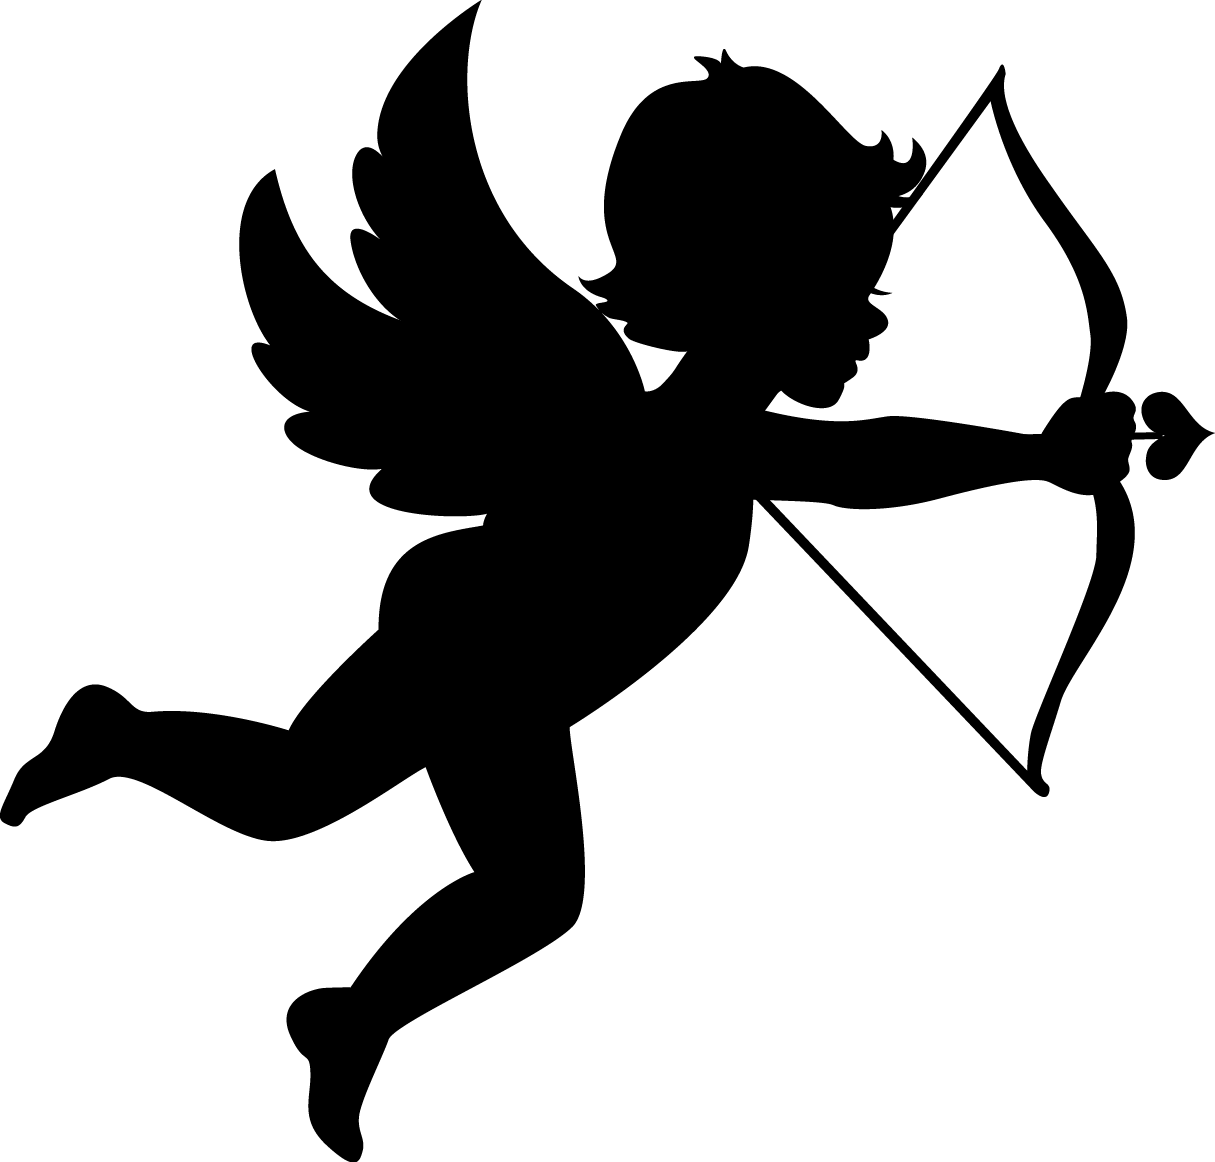 Download Cupid HQ PNG Image.